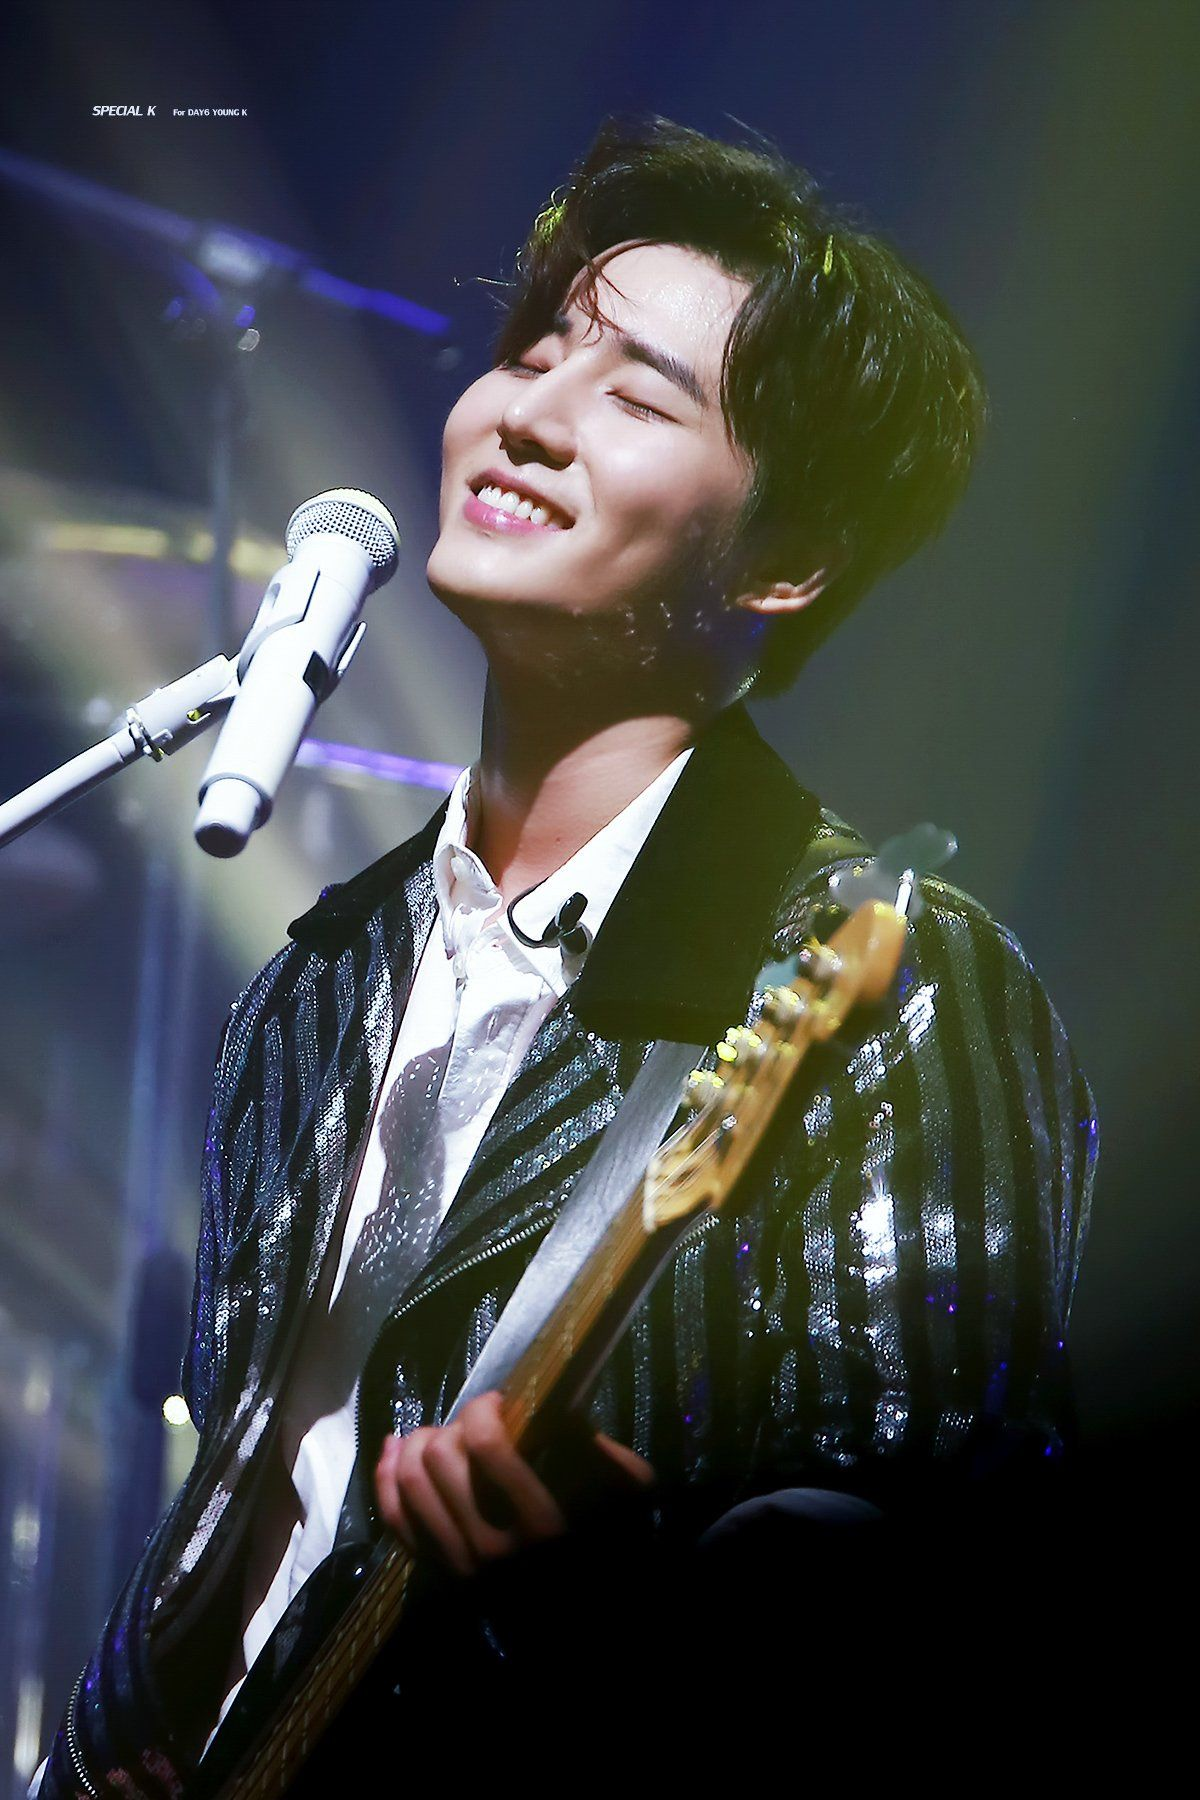 Special K On Twitter Day6 Young K Day6 Boys Like